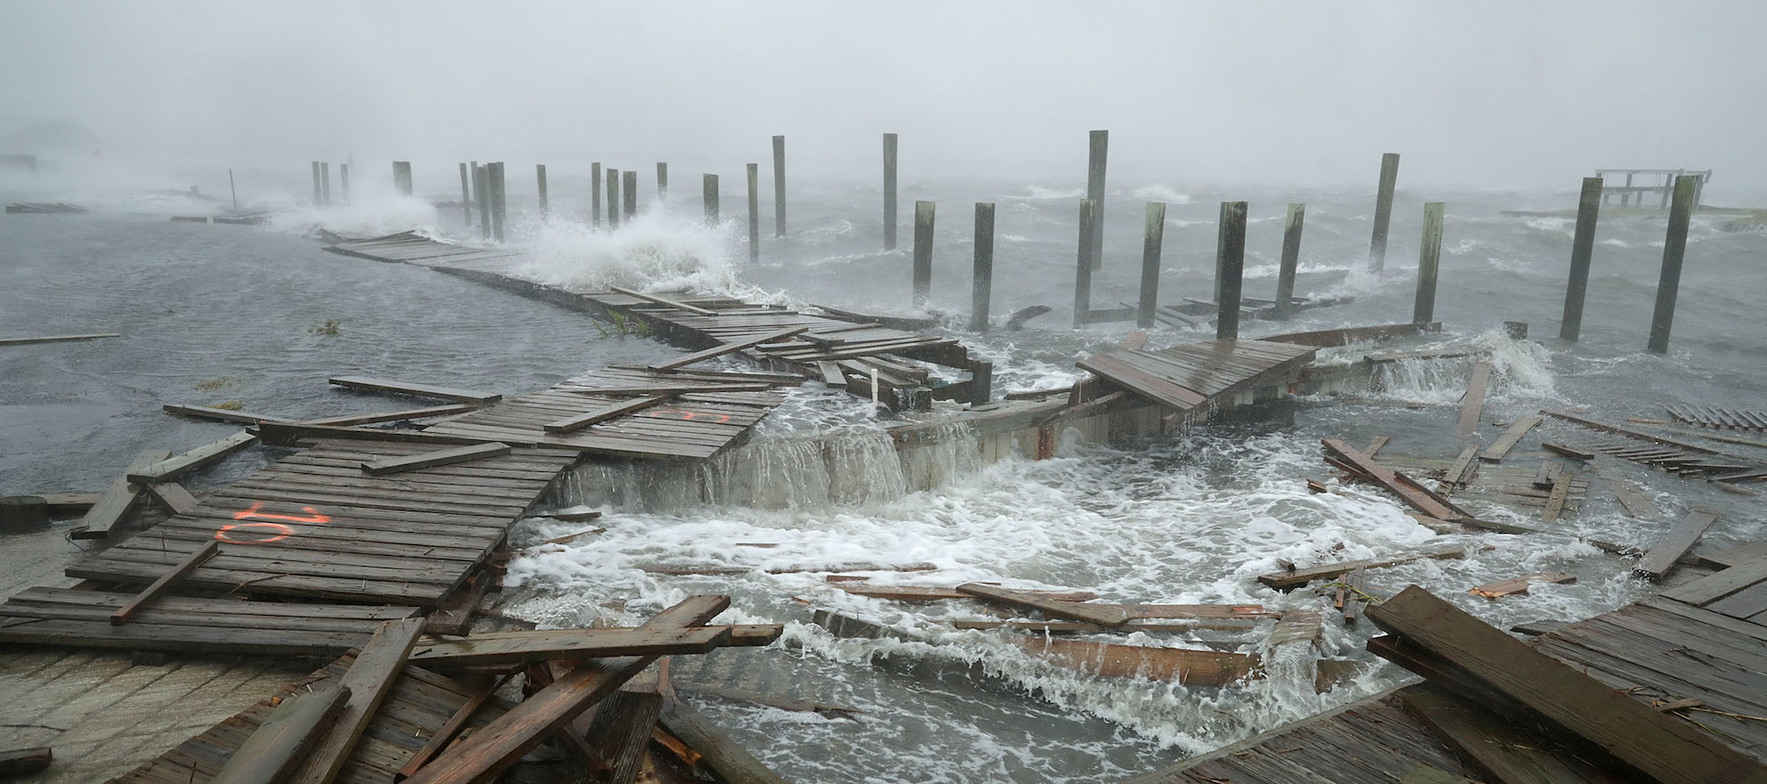 Your gift to A Child's Hope International to help the victims of Hurricane Florence will shine hope in the lives of children and families affected by this disaster. image